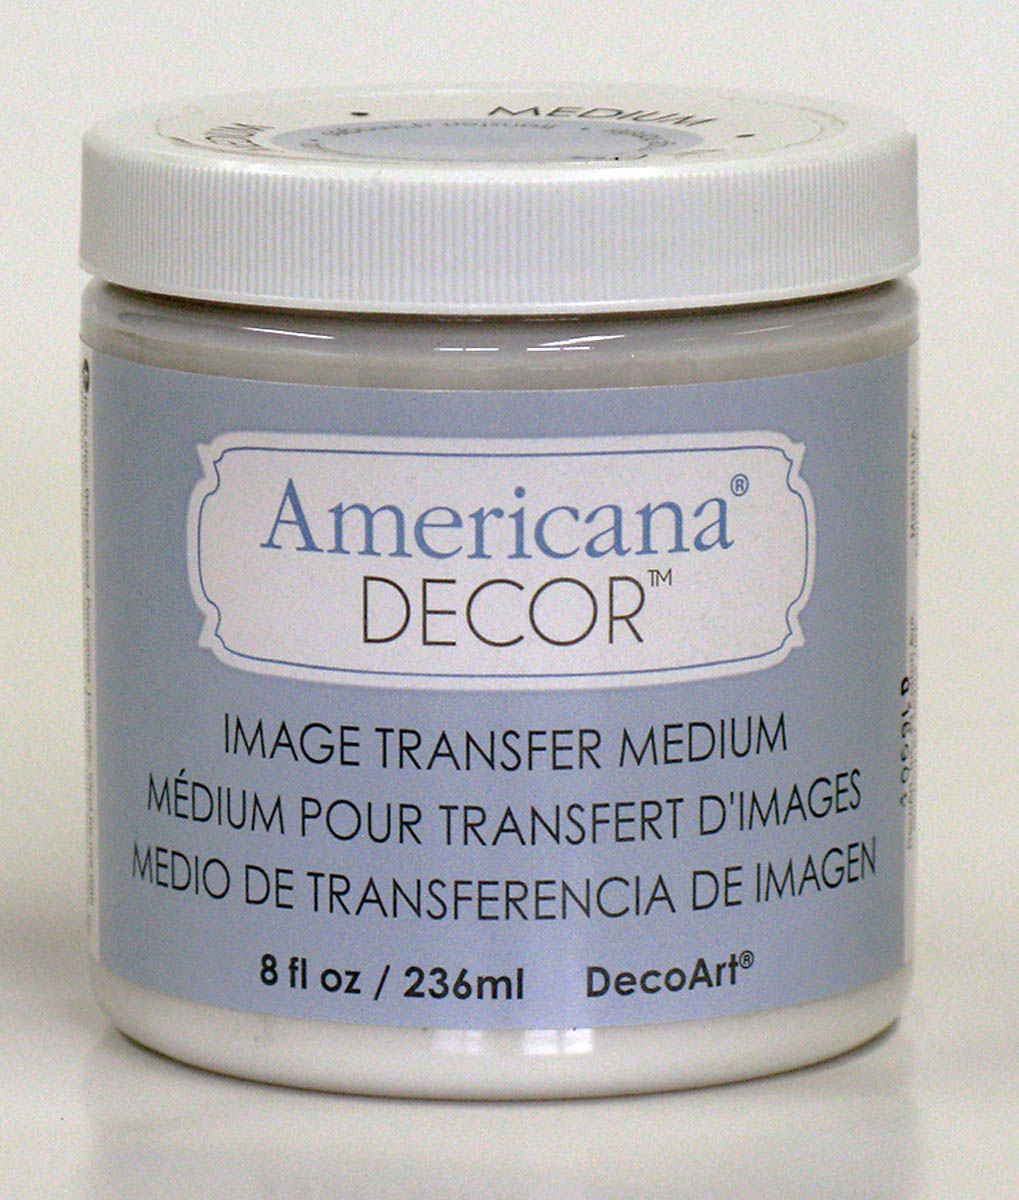 Deco Media Image Transfer Medium